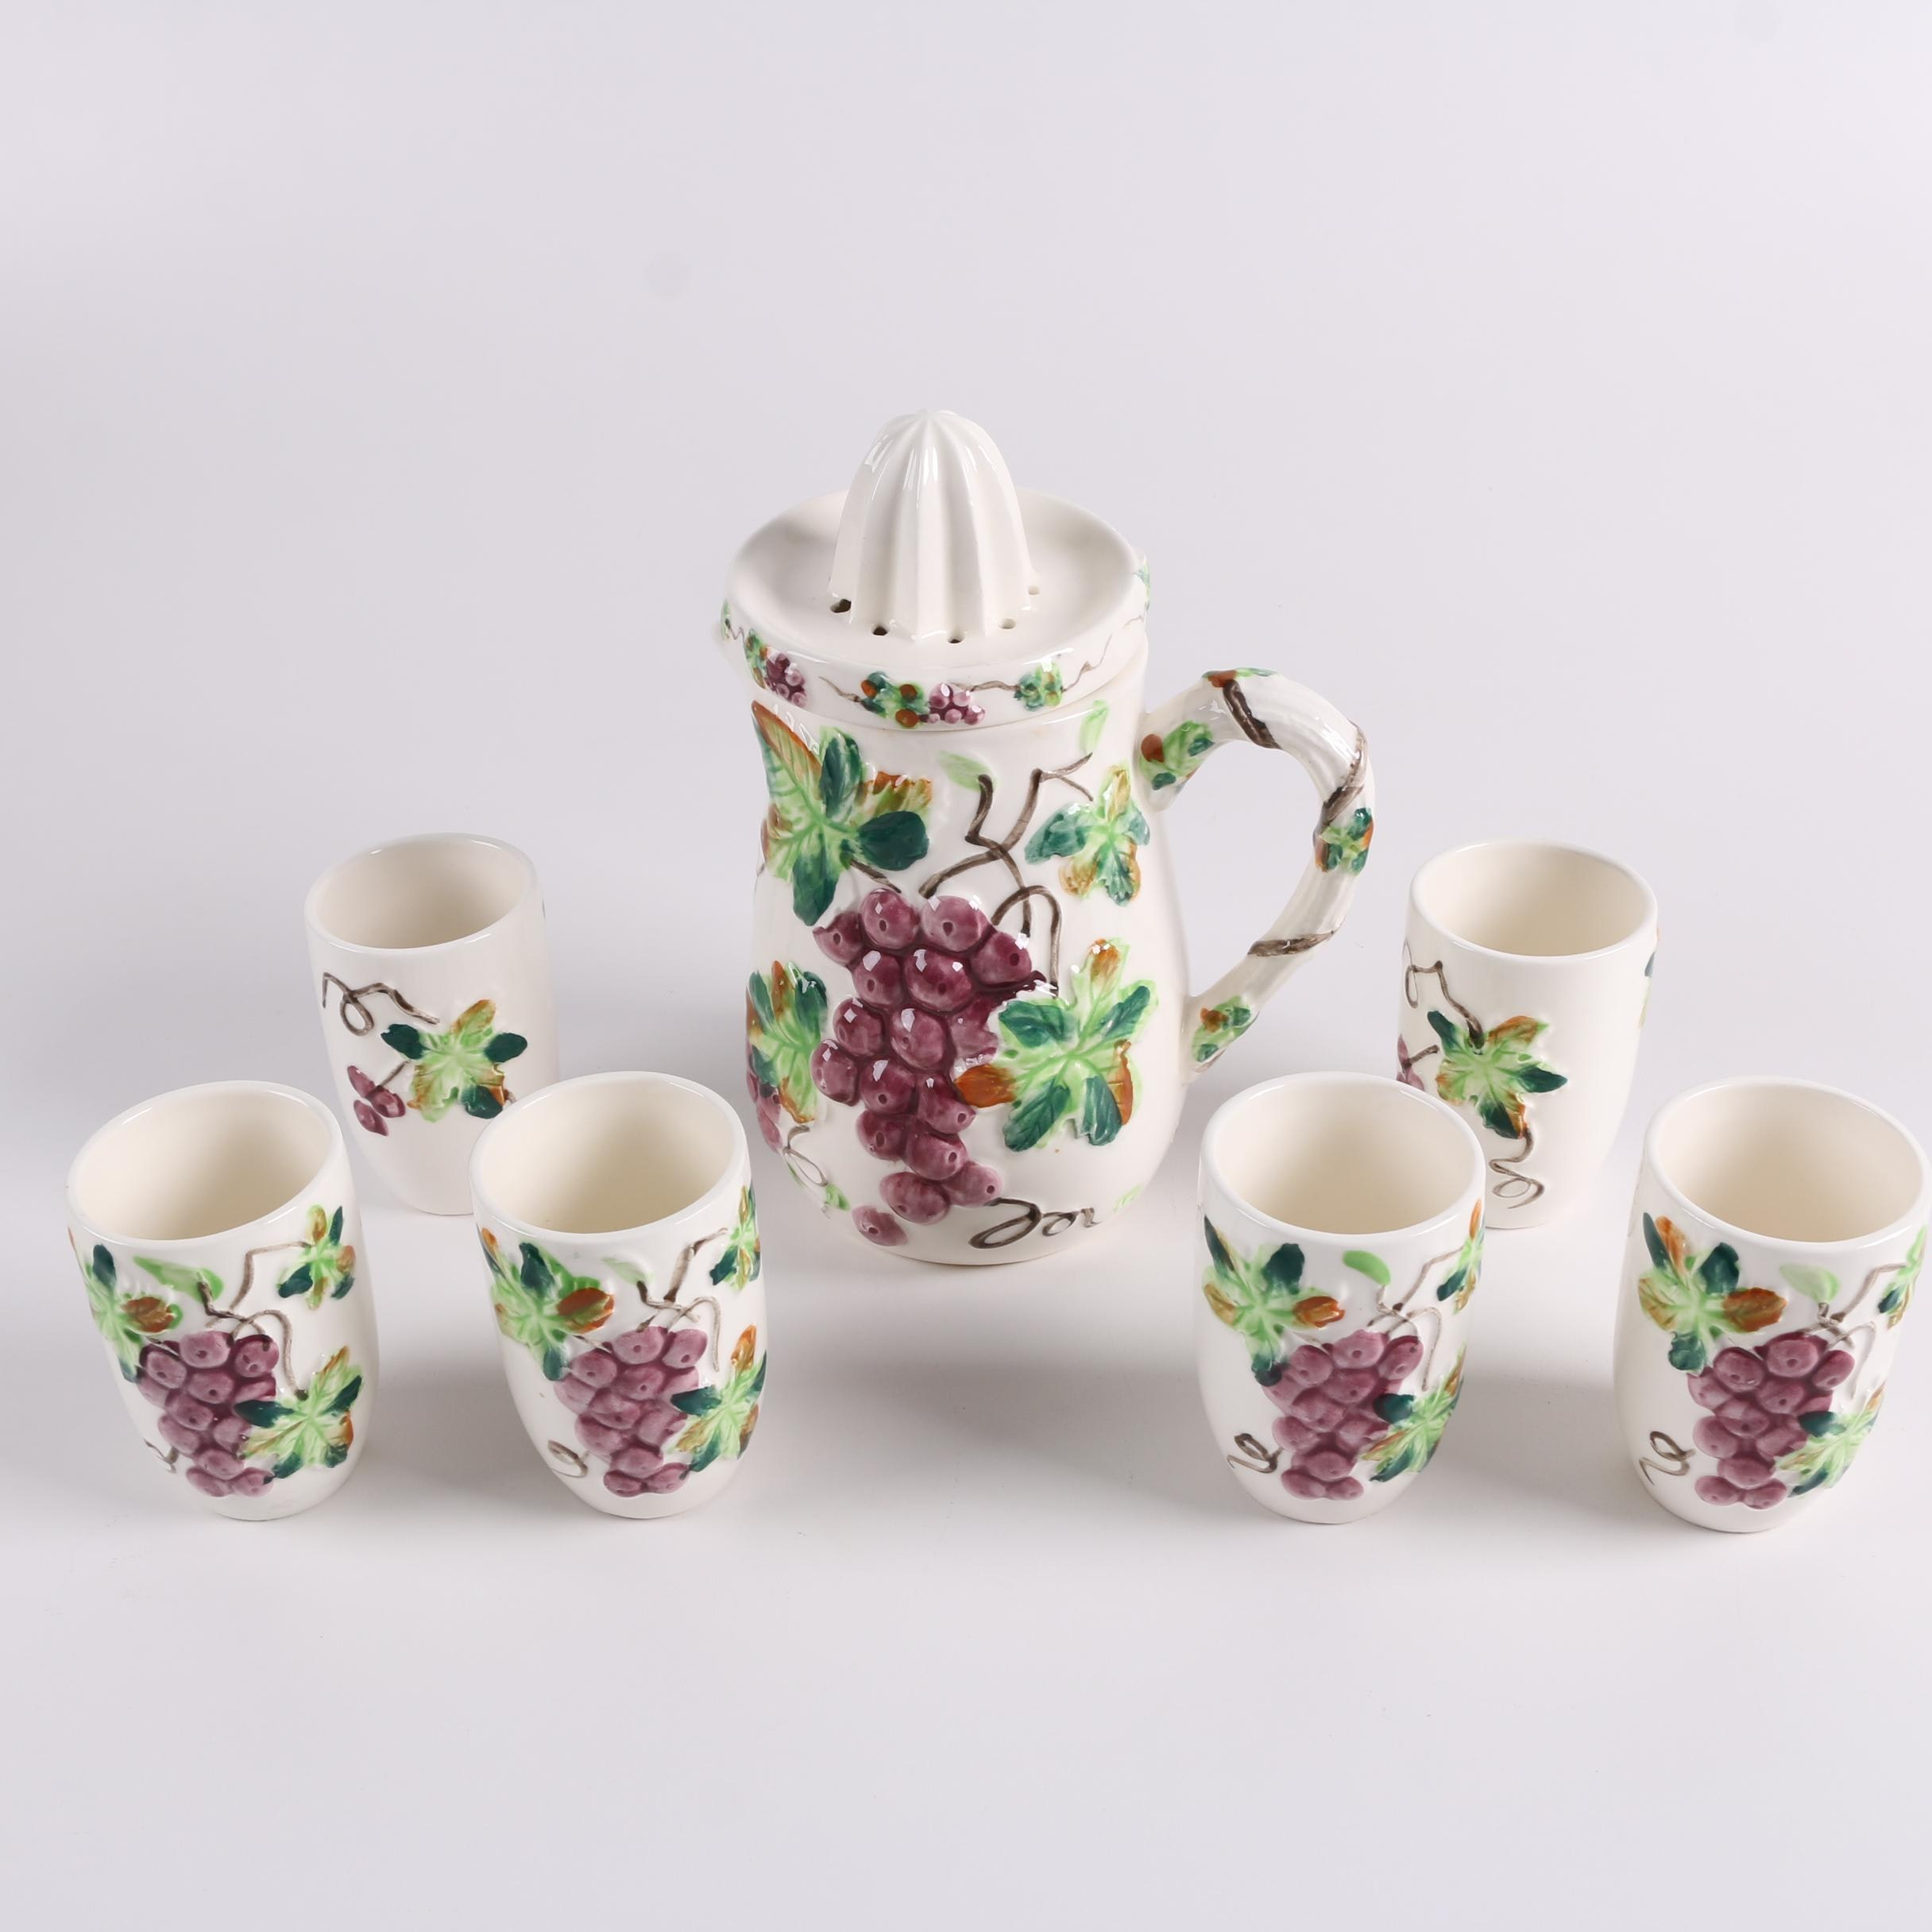 Vintage Grape-Themed Ceramic Juicer and Tumblers